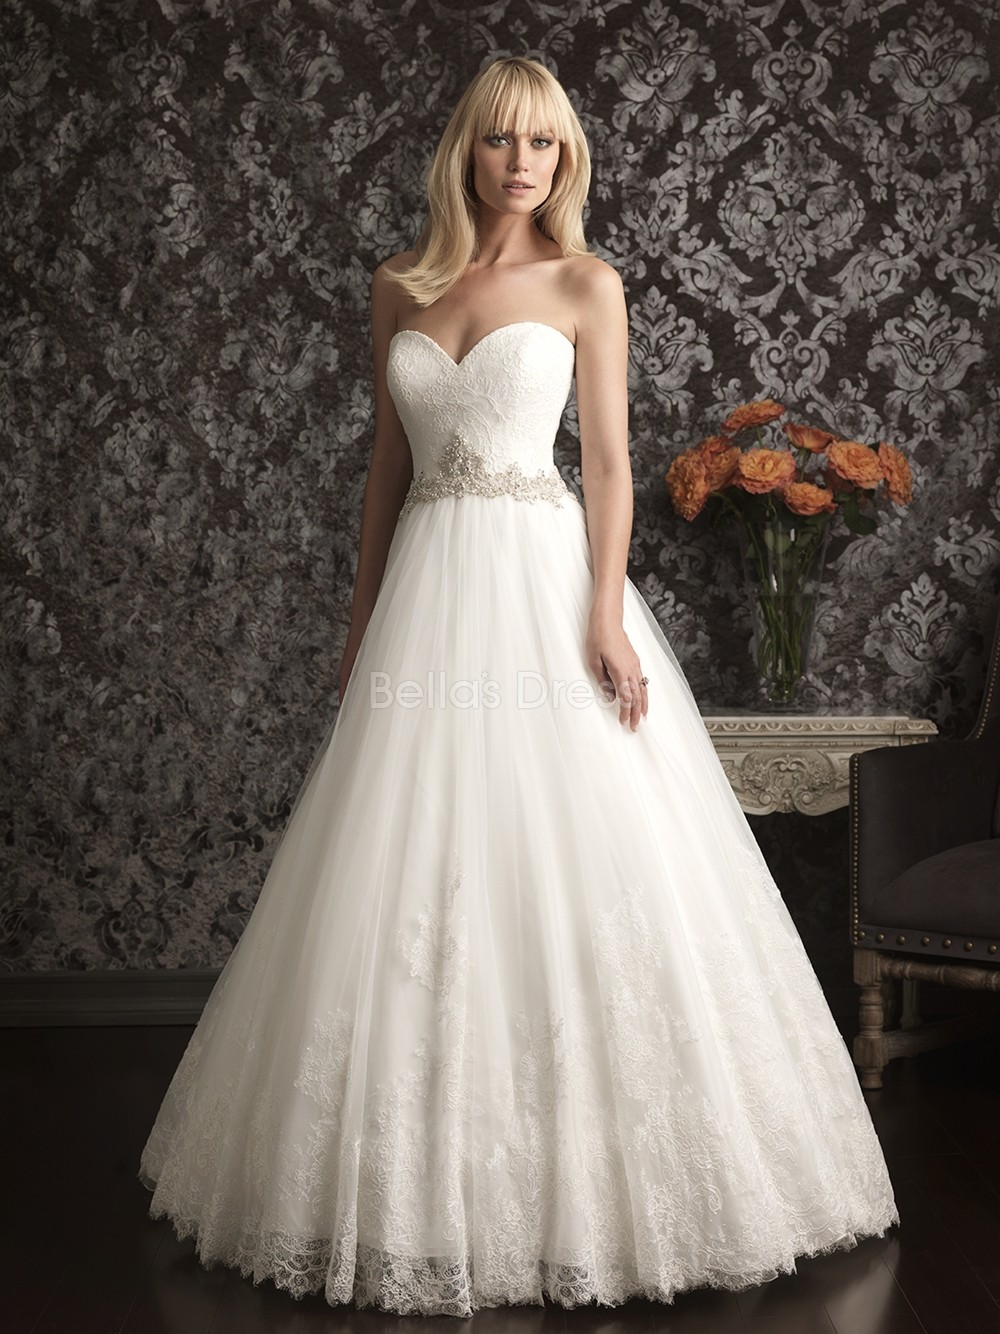 princess wedding dress with lace